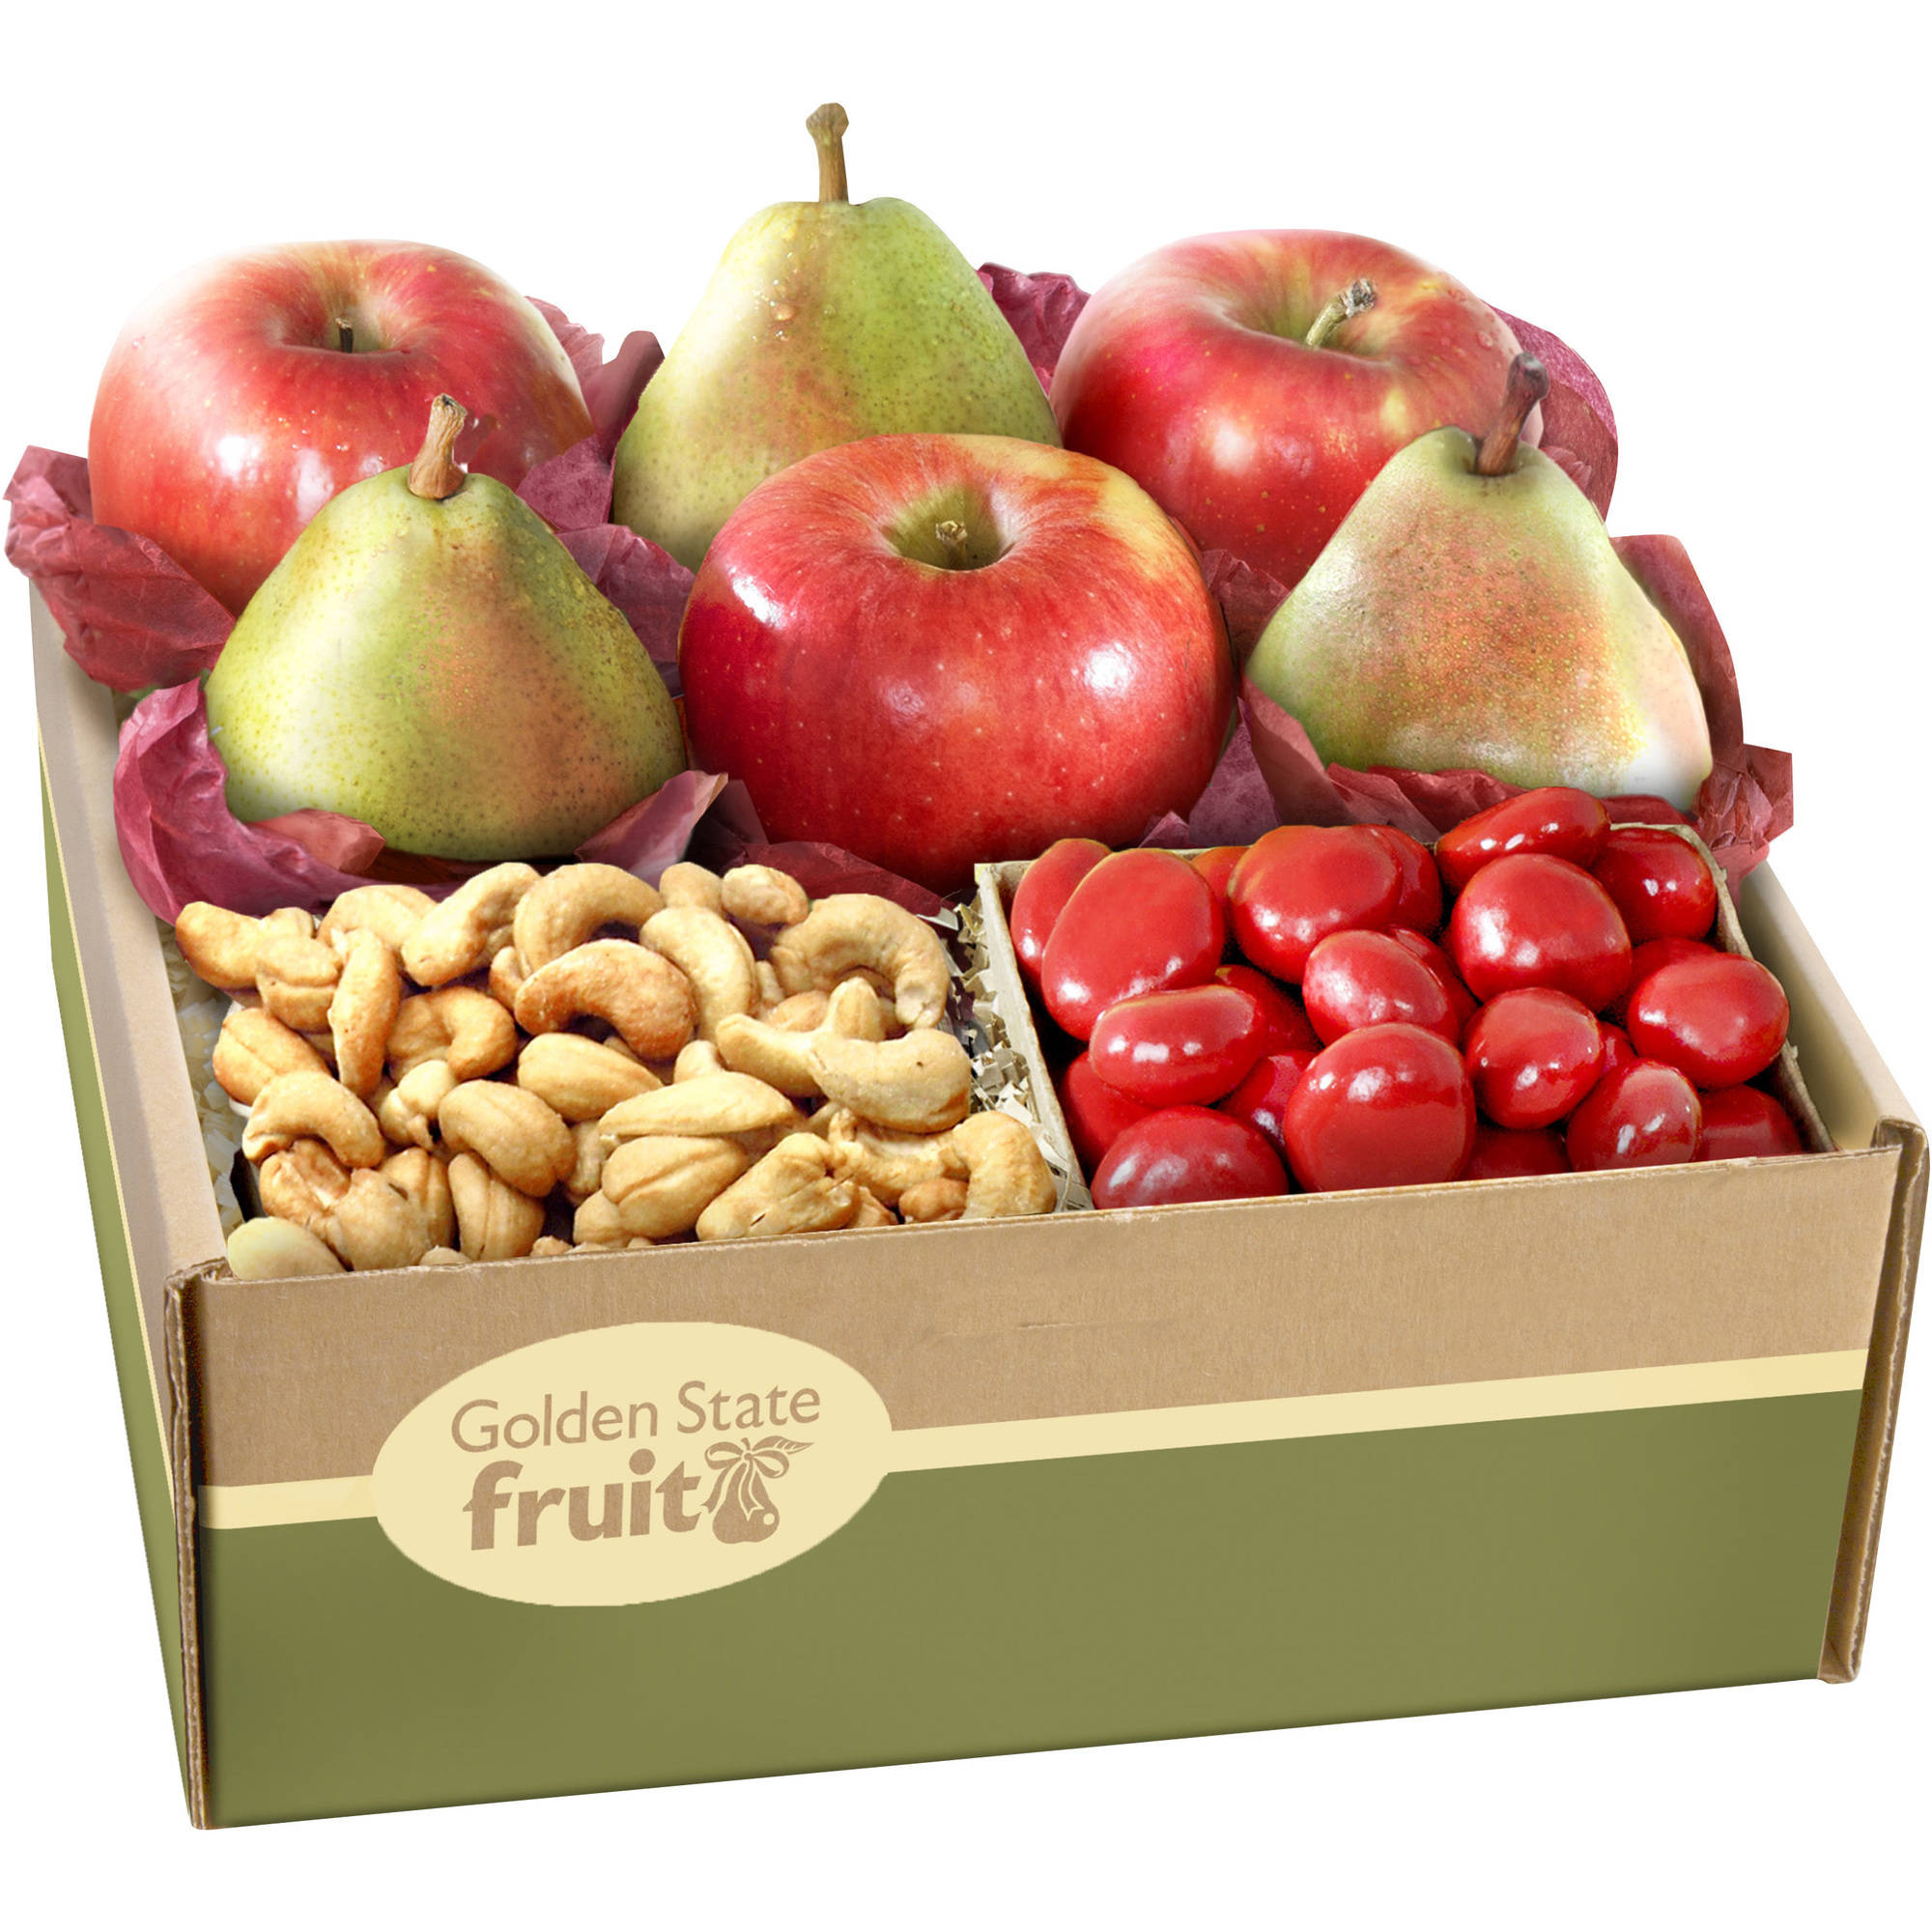 Golden State Fruit Best Wishes Classic Fruit & Snacks Gift Box, 8 pc